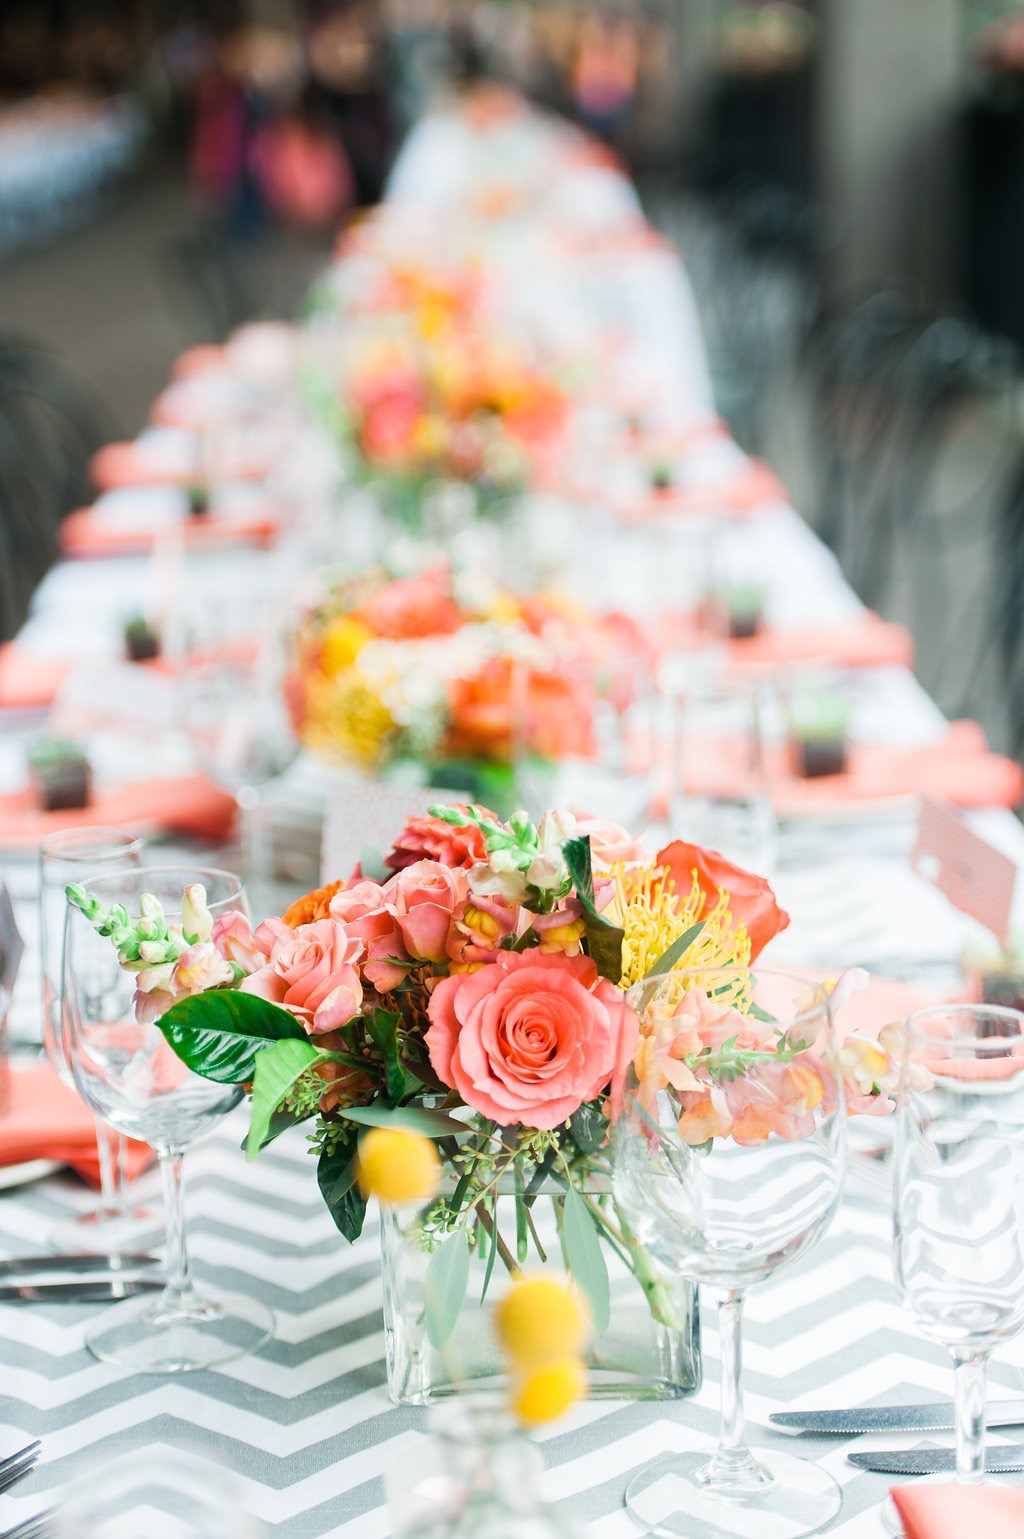 TABLESCAPES FOR A SUMMER WEDDING